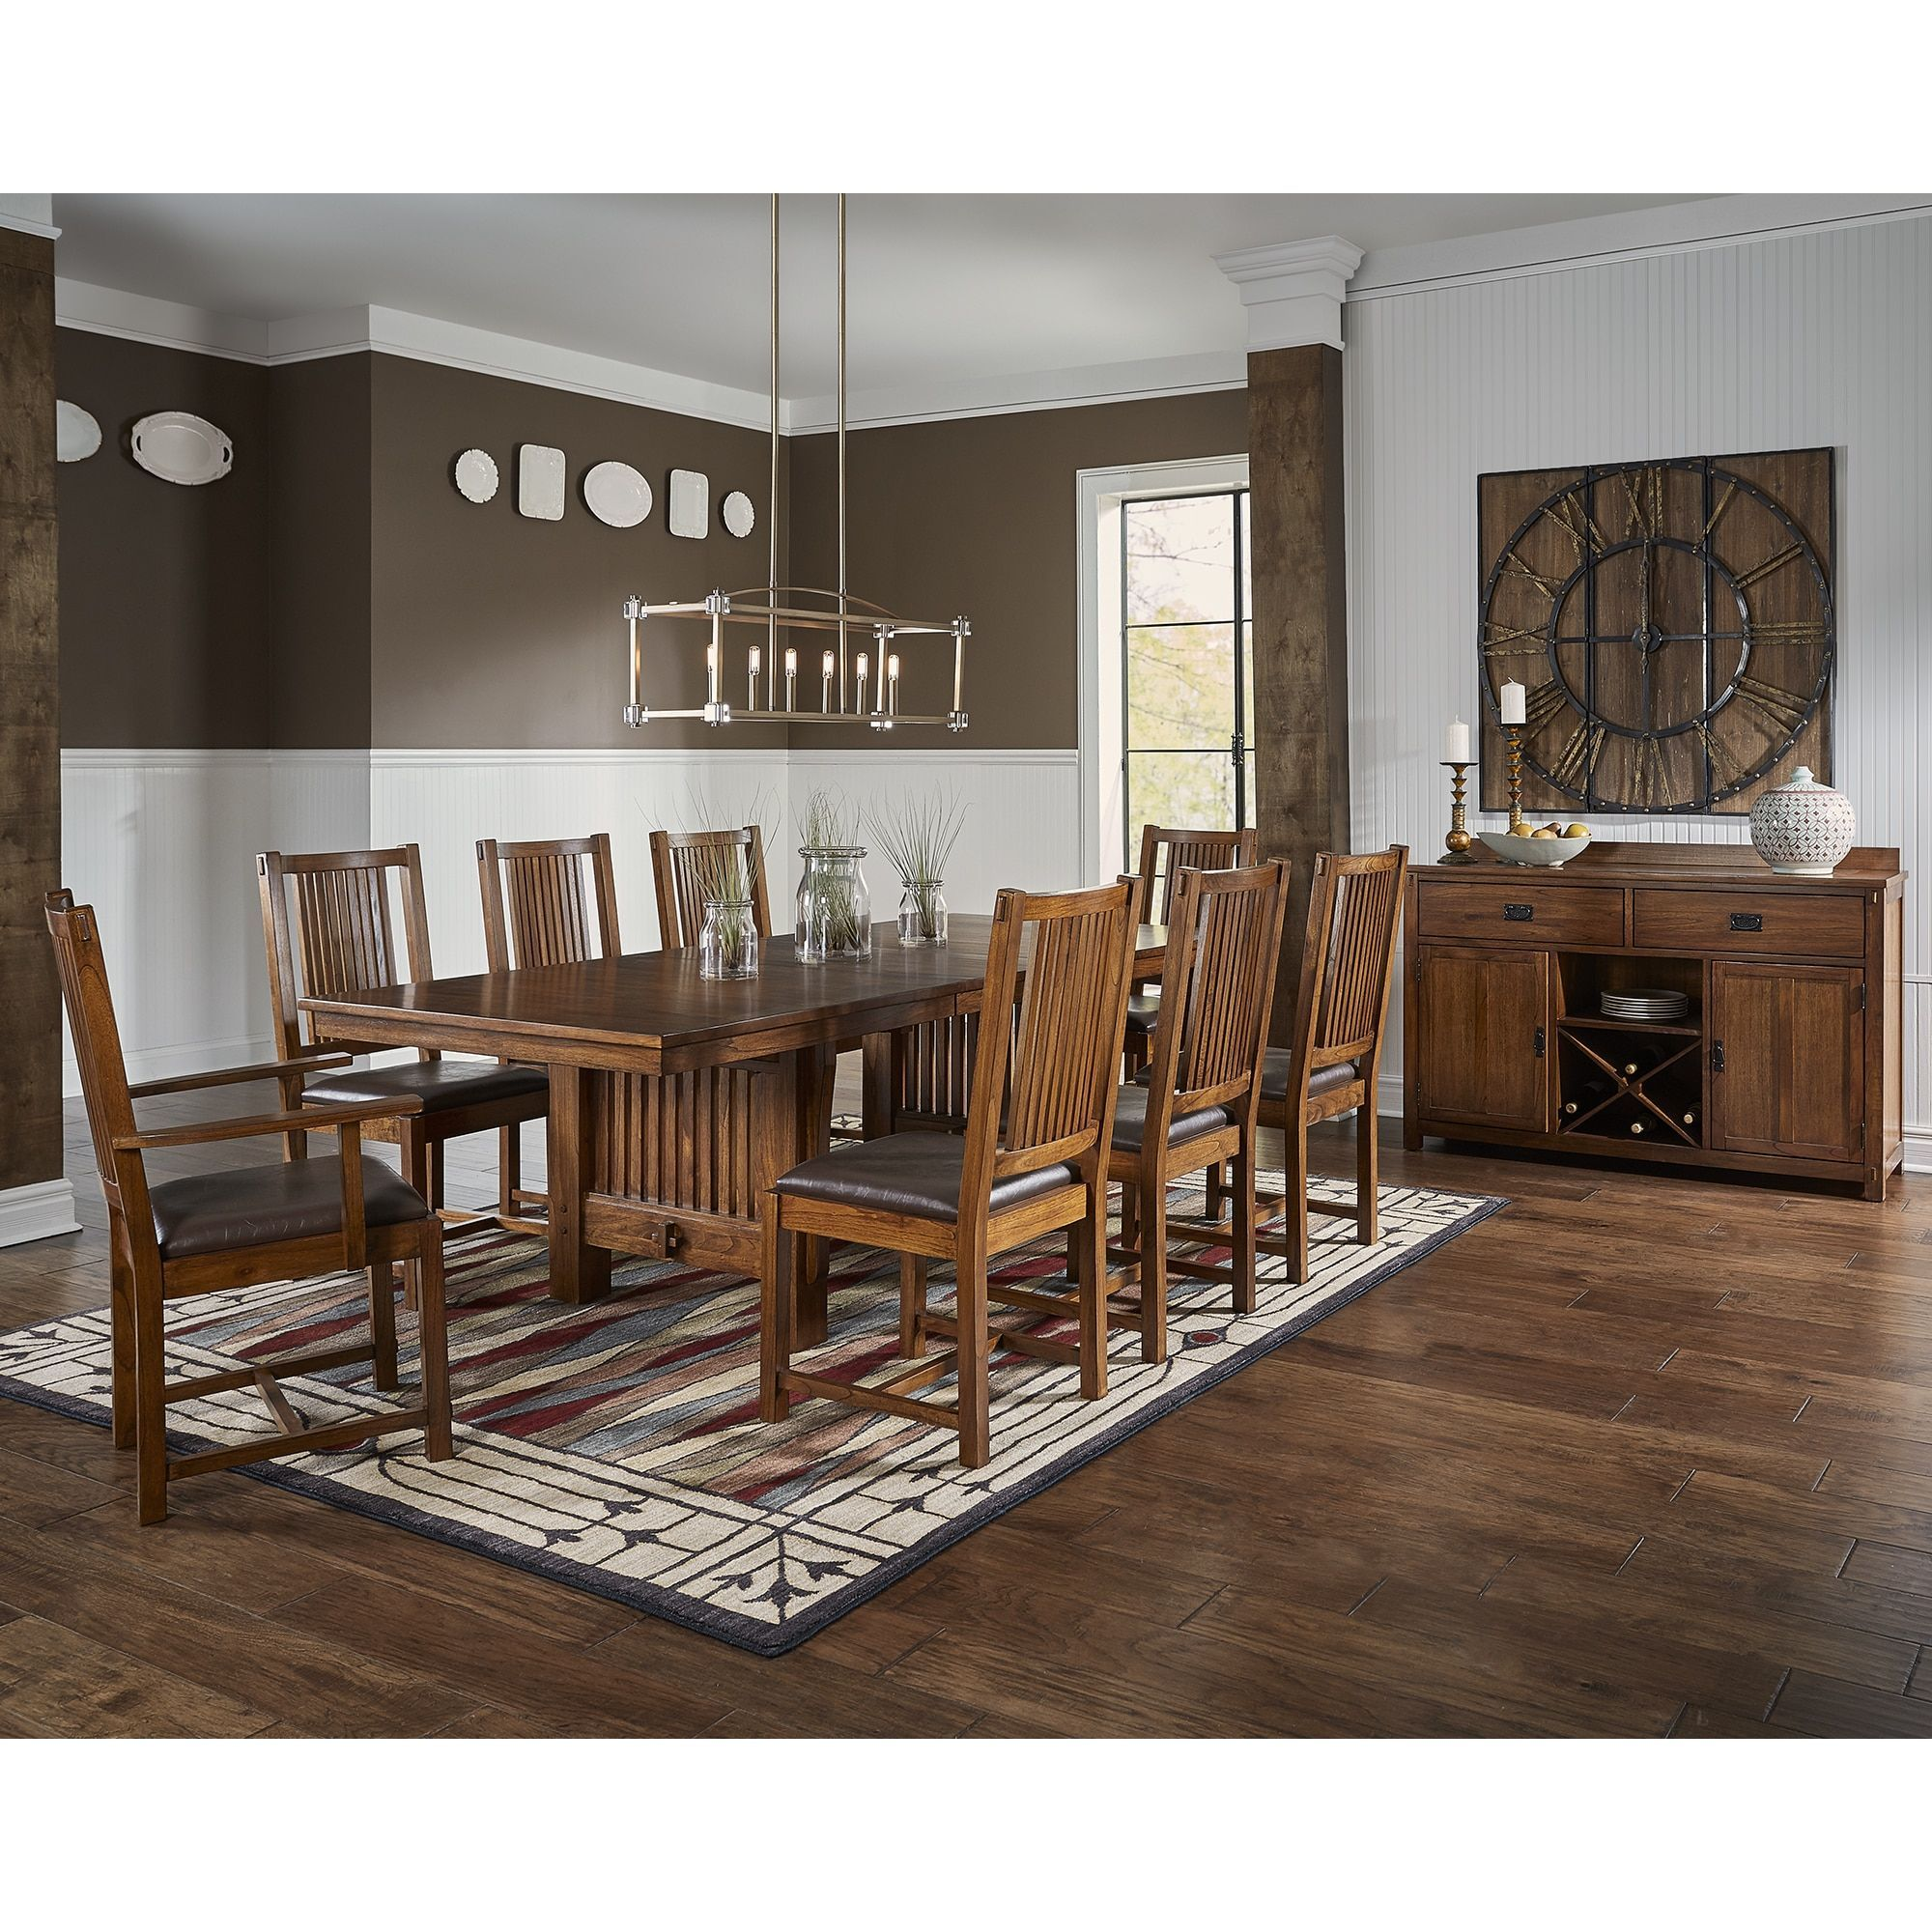 Dining Room Table Size For 10 Simple Gemma 10Piece Solid Wood Dining Set Gemma 10Pc Solid Wood Dining Inspiration Design